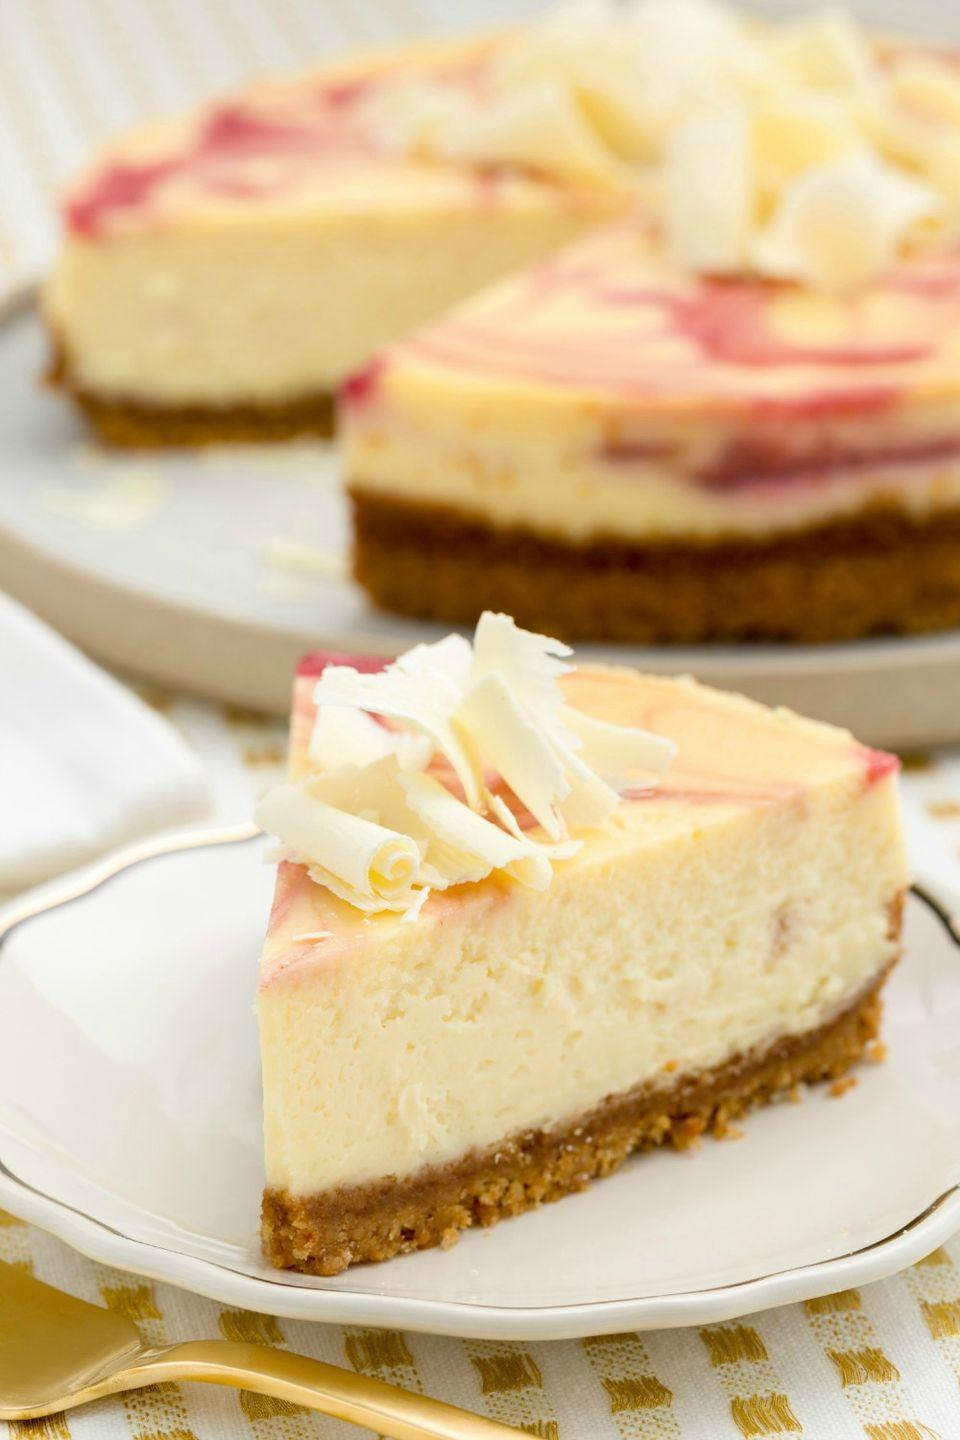 "<p>With a decadent raspberry swirl, this cheesecake looks as decadent as it tastes.</p><p>Get the recipe from <a href=""https://www.delish.com/cooking/recipe-ideas/recipes/a45124/white-chocolate-cheesecake-raspberry-swirl-recipe/"" rel=""nofollow noopener"" target=""_blank"" data-ylk=""slk:Delish"" class=""link rapid-noclick-resp"">Delish</a>.</p>"